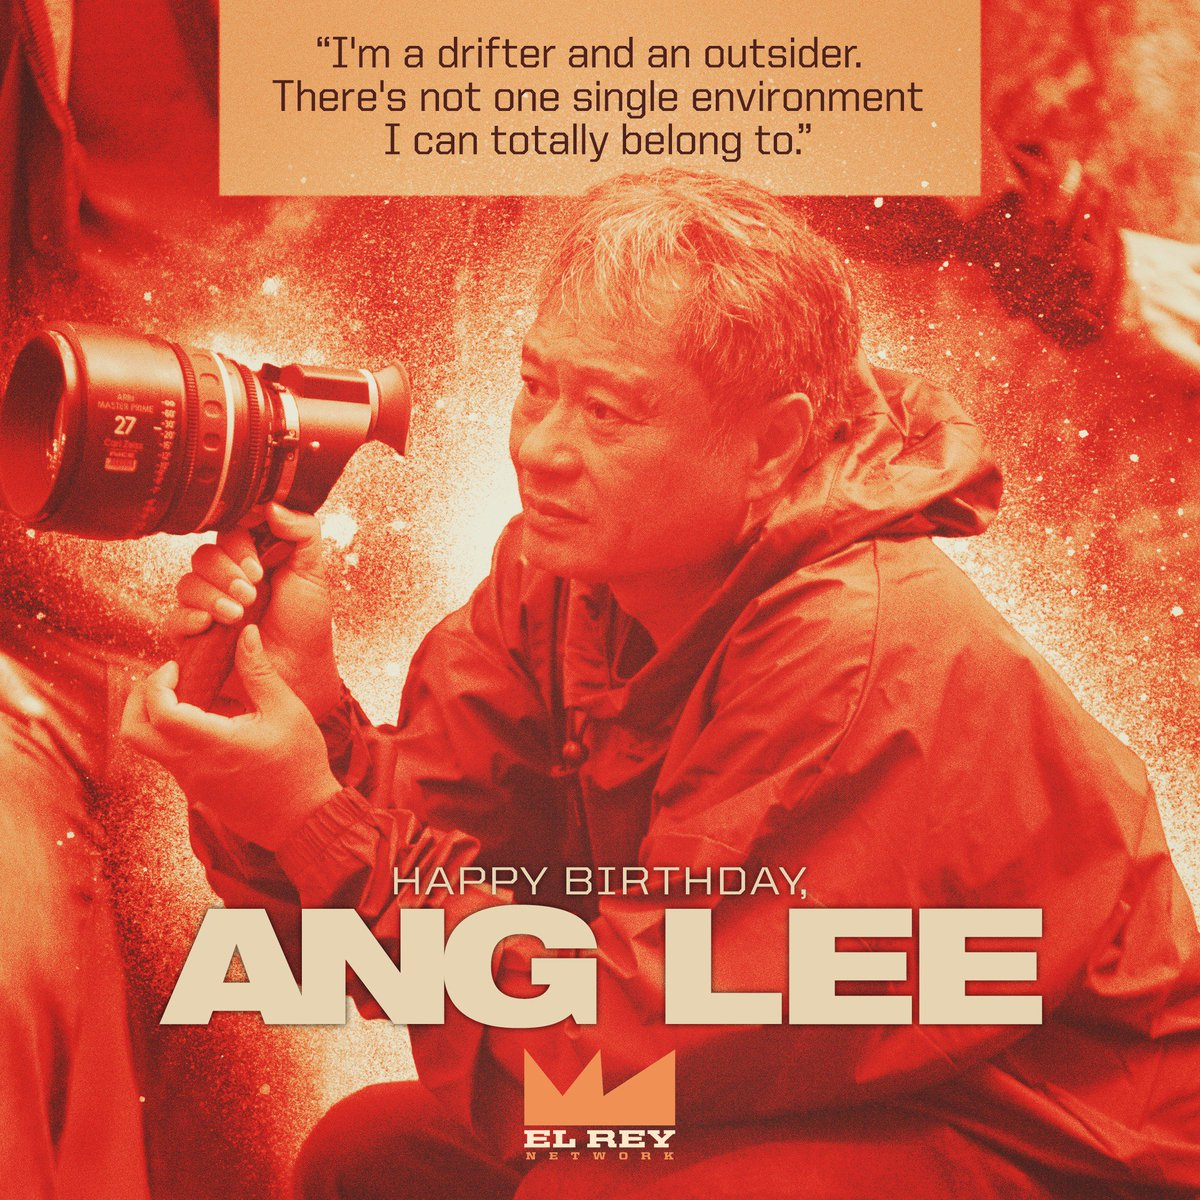 Happy Birthday to Ang Lee from El Rey Network! #CrouchingTigerHiddenDragon #Hulk  #LifeofPi #TheIceStorm #Directing #Movies #AngLee<br>http://pic.twitter.com/rjNDcW4bsH